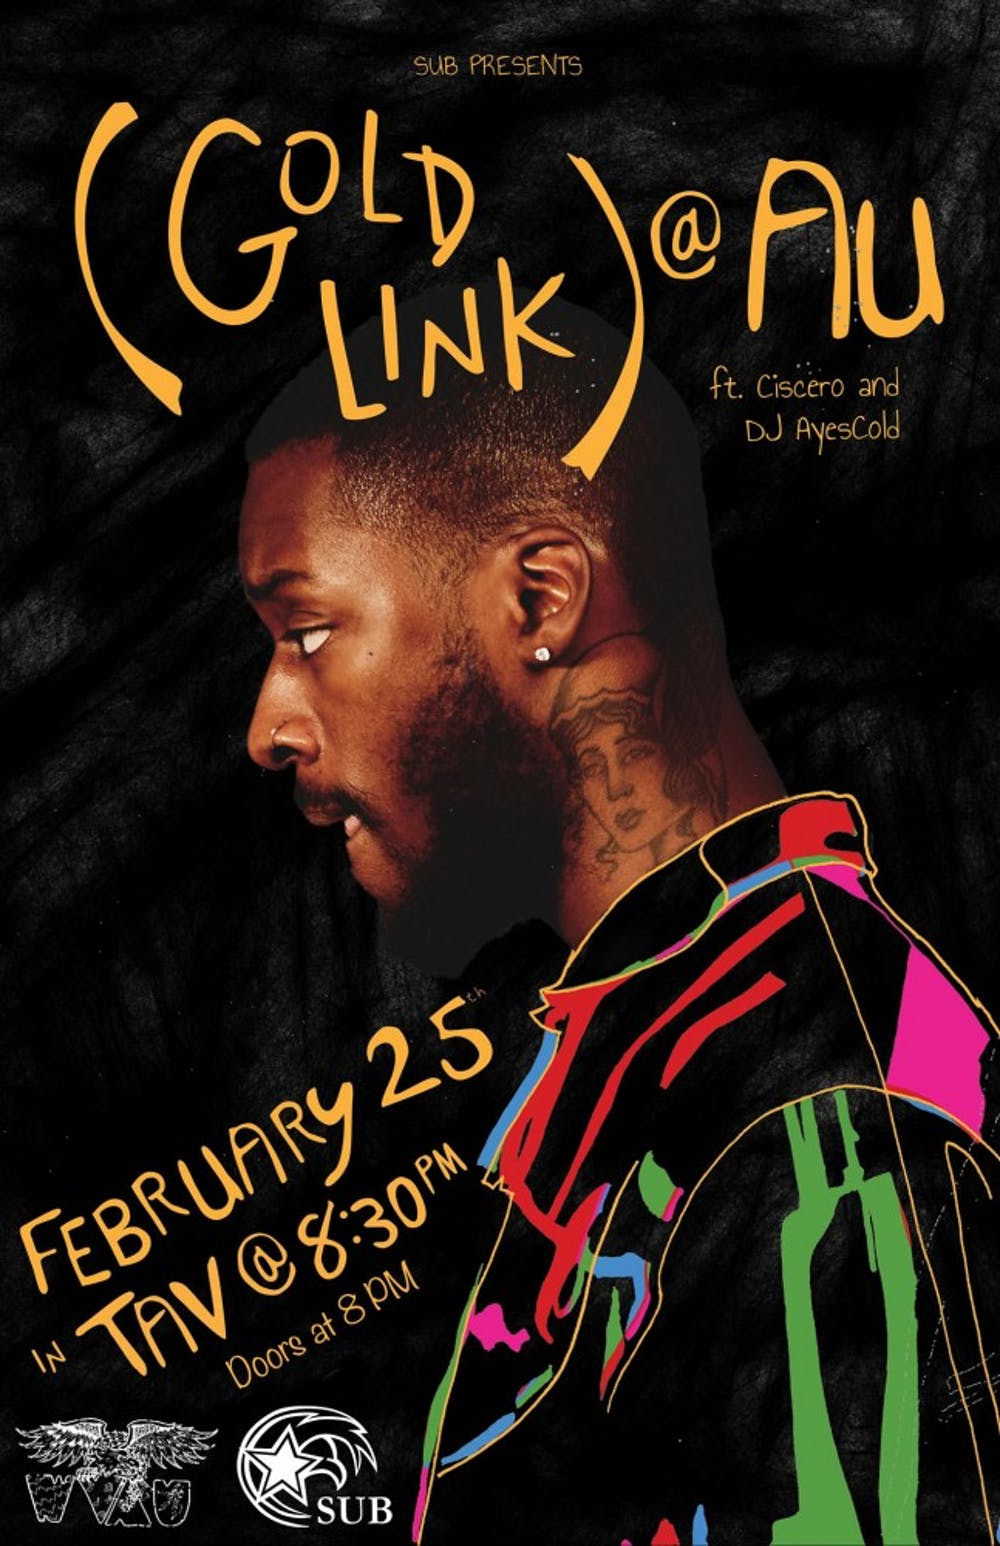 Goldlink to perform at SUB spring concert